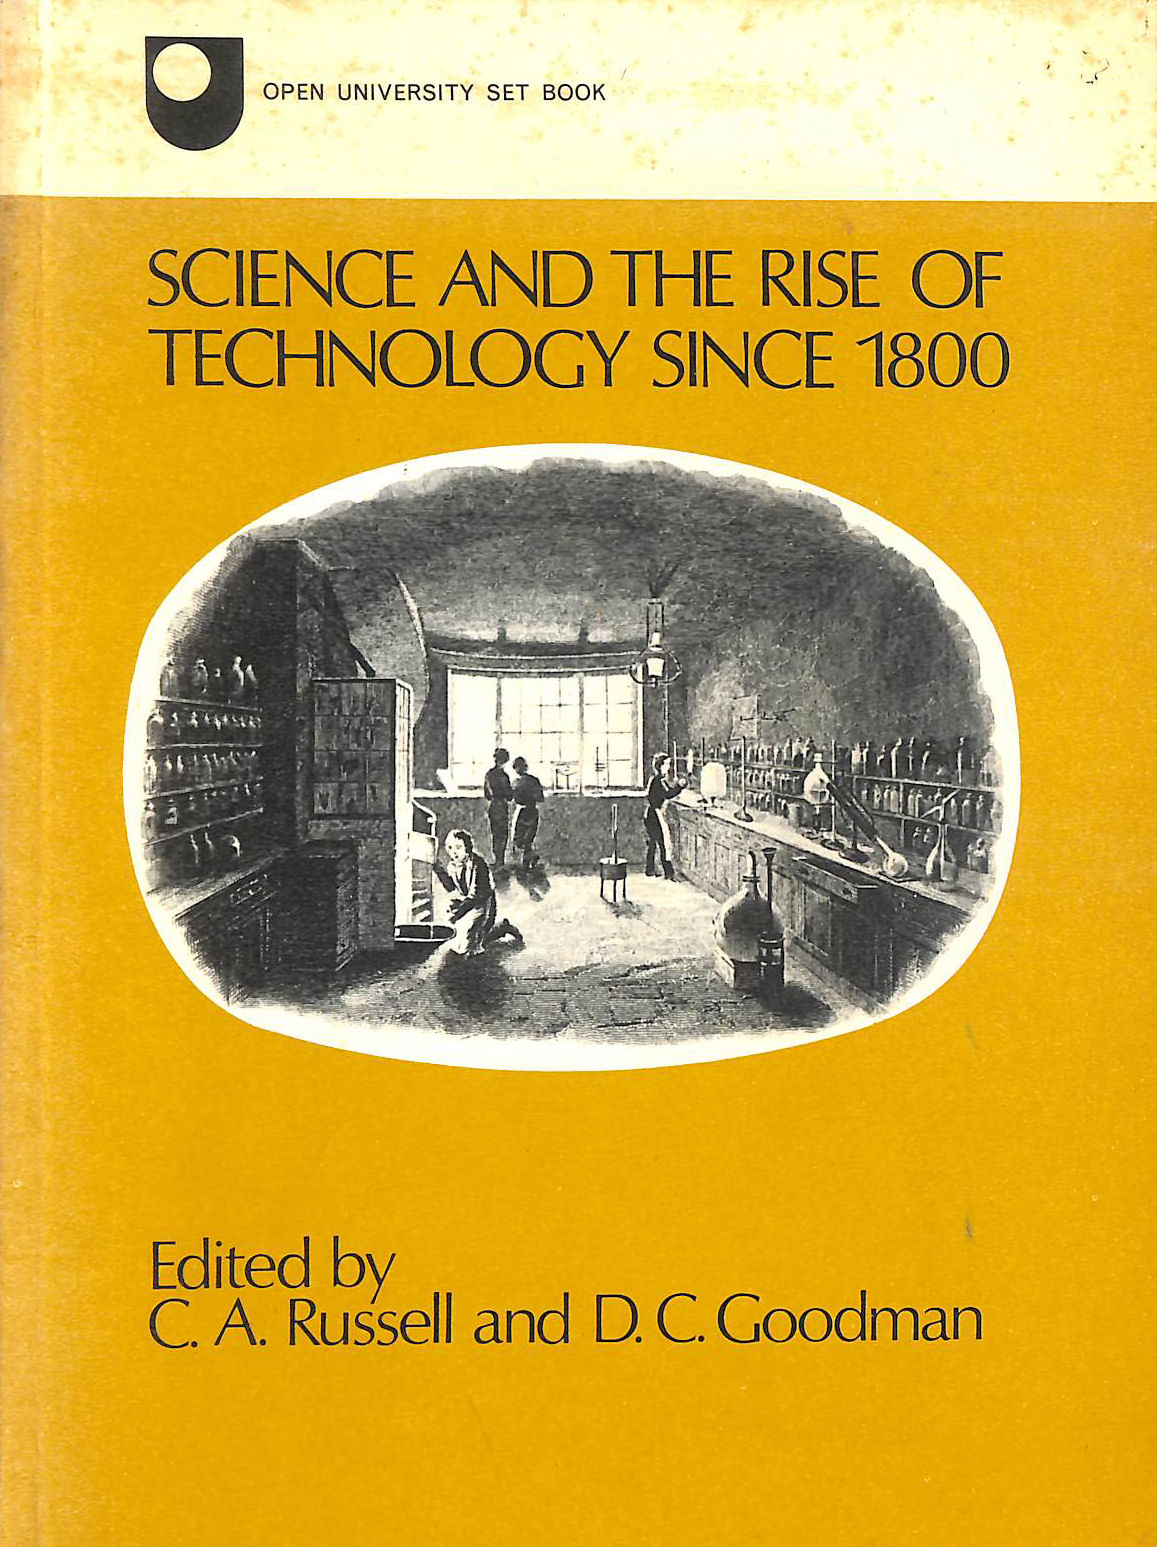 Image for Science And The Rise Of Technology Since 1800 (Set Books)